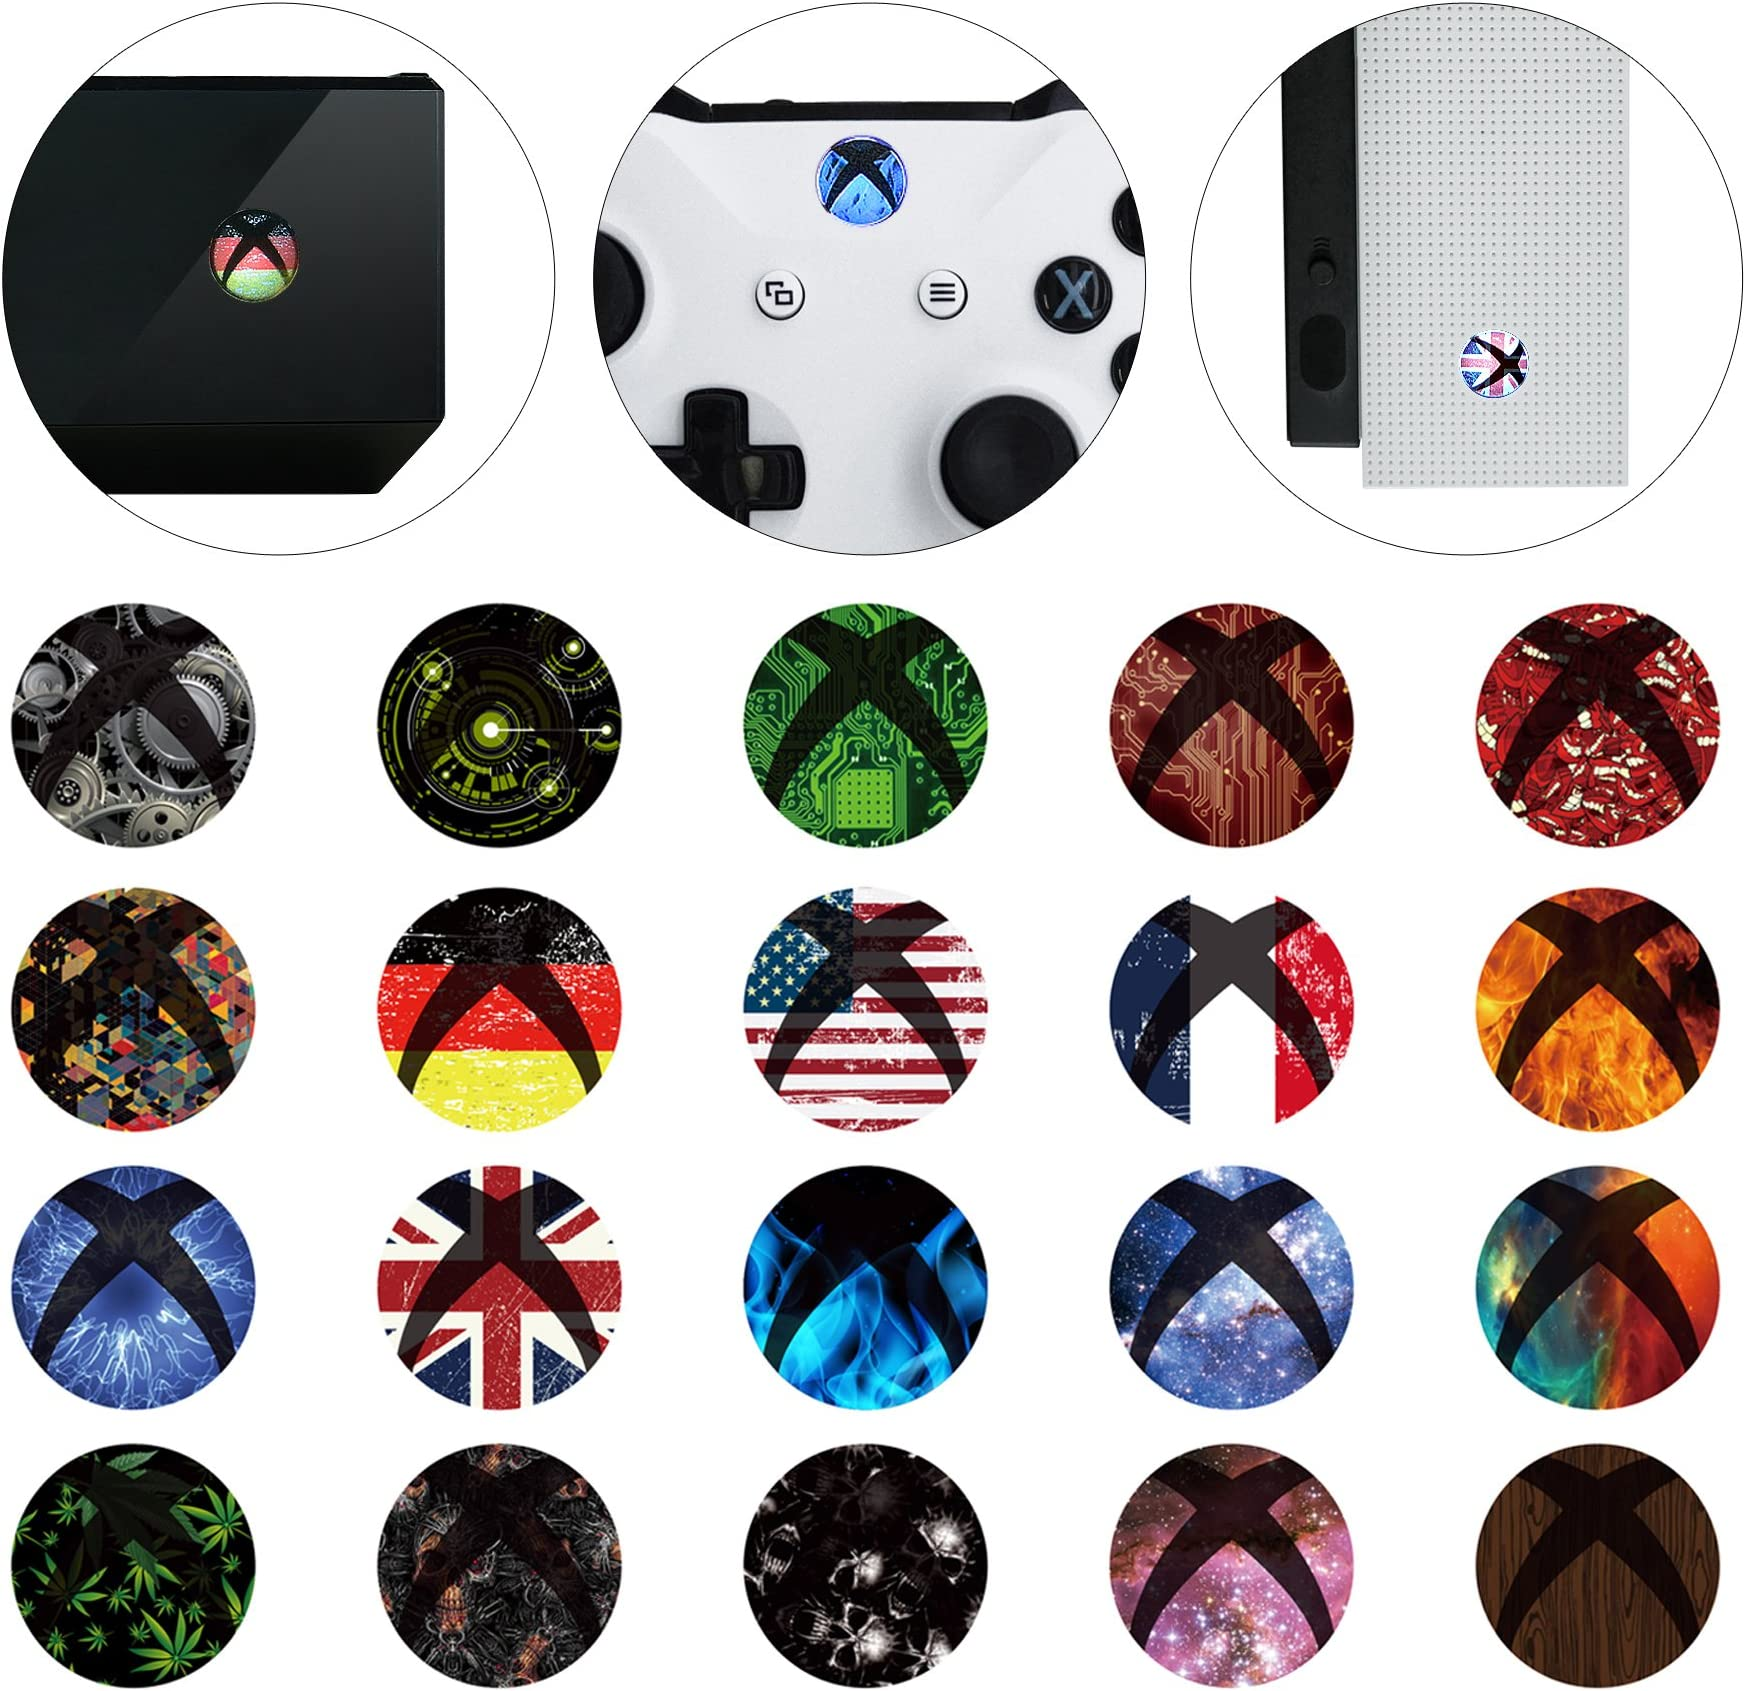 Sticker Decal Bright Xbox One Elite Controller Skin Kit Black Penny